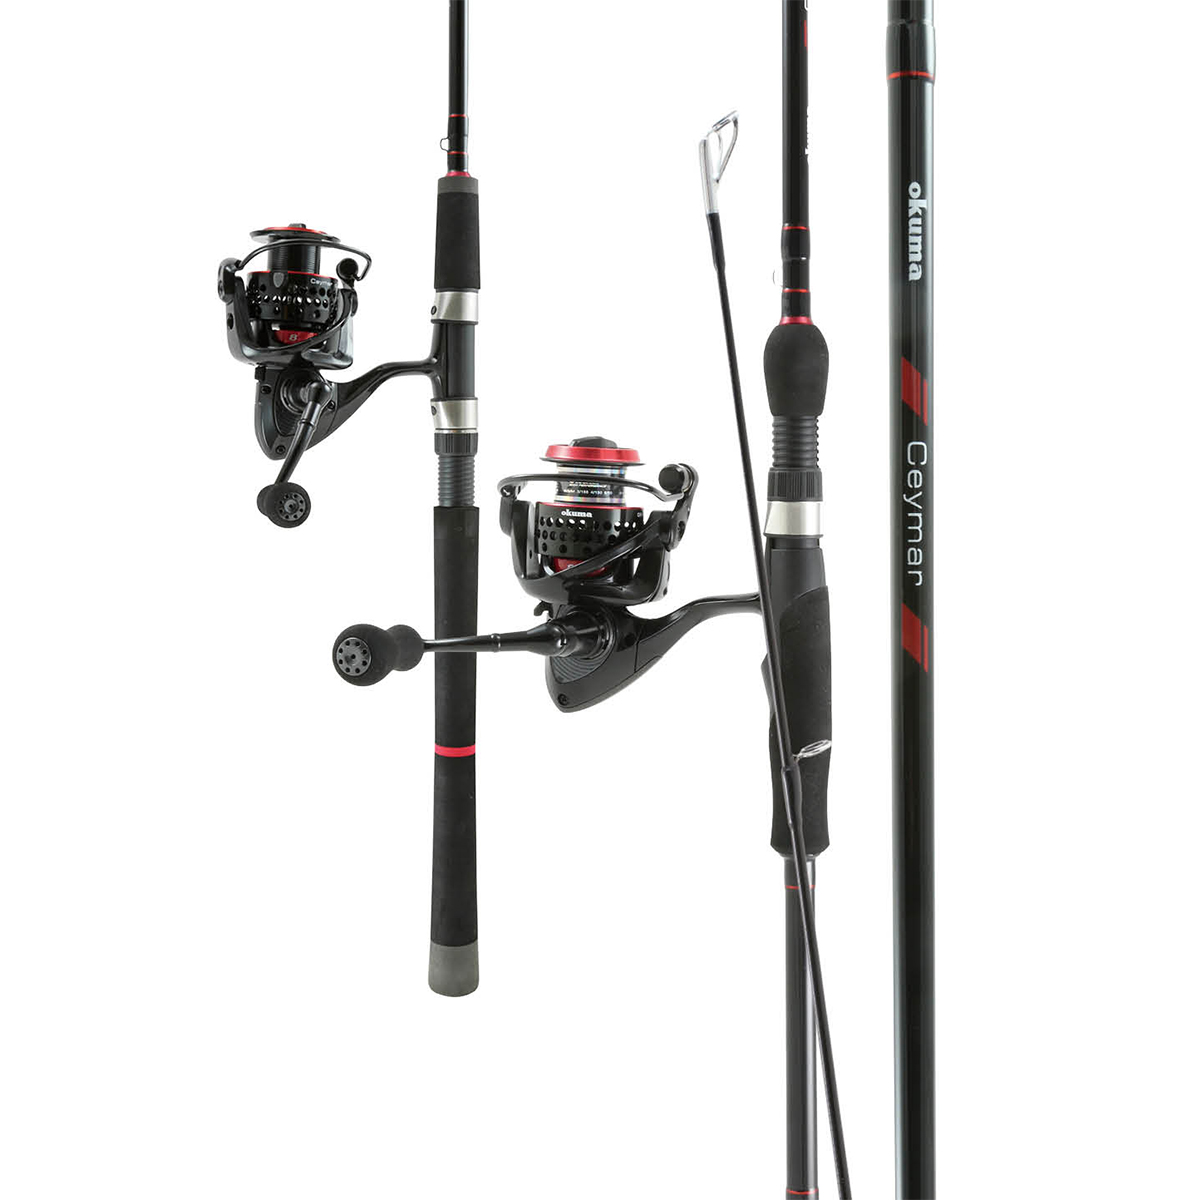 Ceymar Spinning Combos - Okuma Ceymar Spinning Combos-UFR technology increases rod's lifting power and maximum strength-Quick-Set anti-reverse roller bearing system